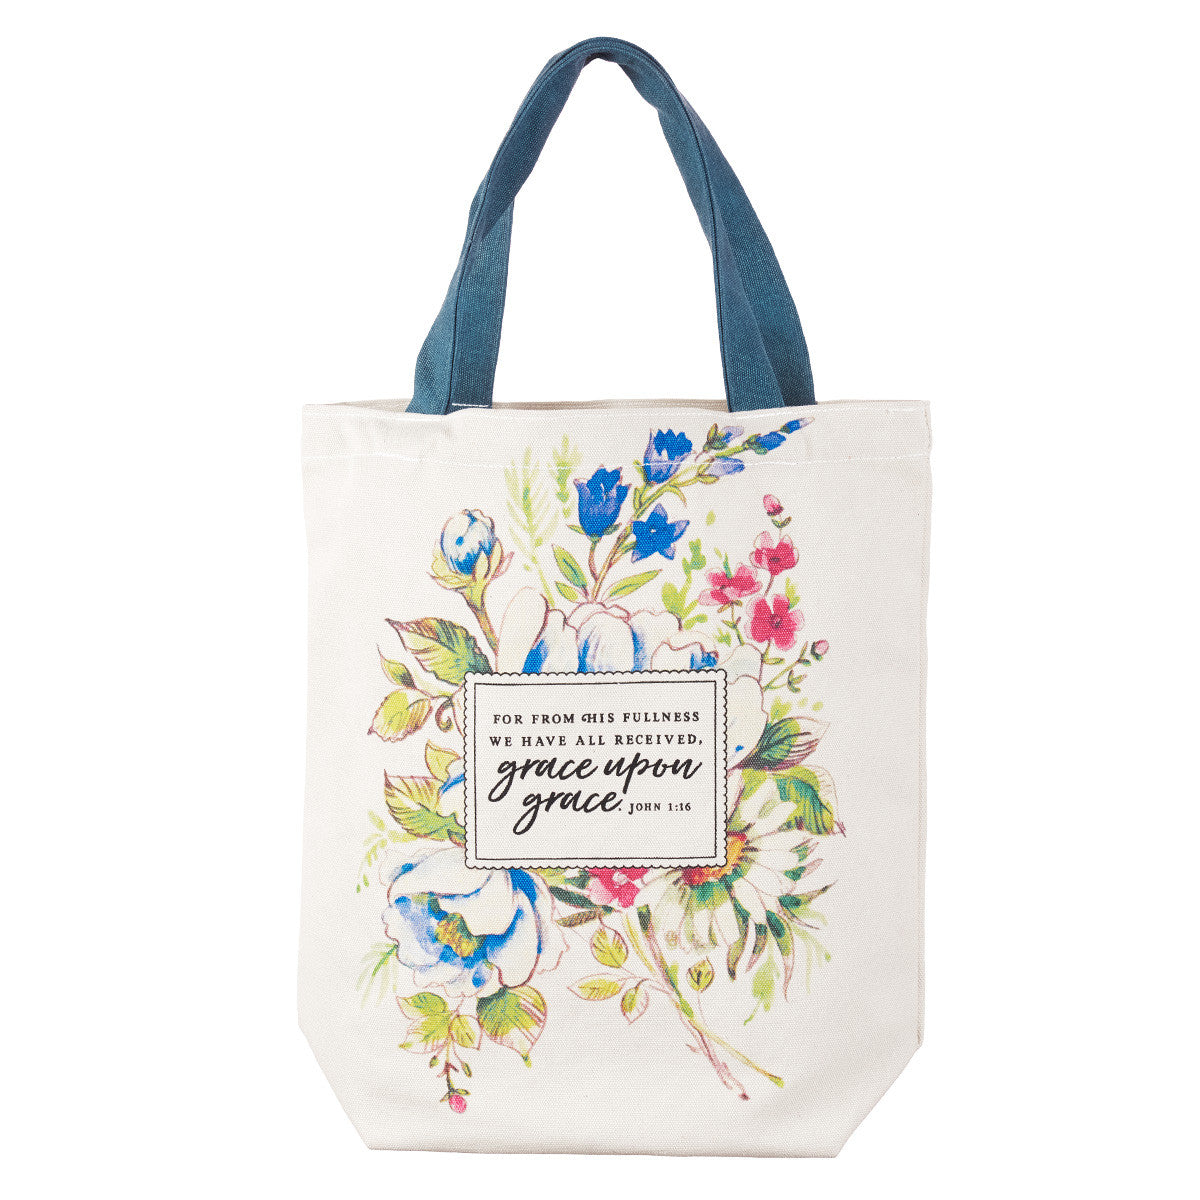 ROCKONLINE | New Creation Church | NCC | Joseph Prince | ROCK Bookshop | ROCK Bookstore | Star Vista | Lifestyle | Tote | Travel | Grocery Bag | Shopping Bag | Assorted Cotton Canvas Tote Bag | Free delivery for Singapore Orders above $50.